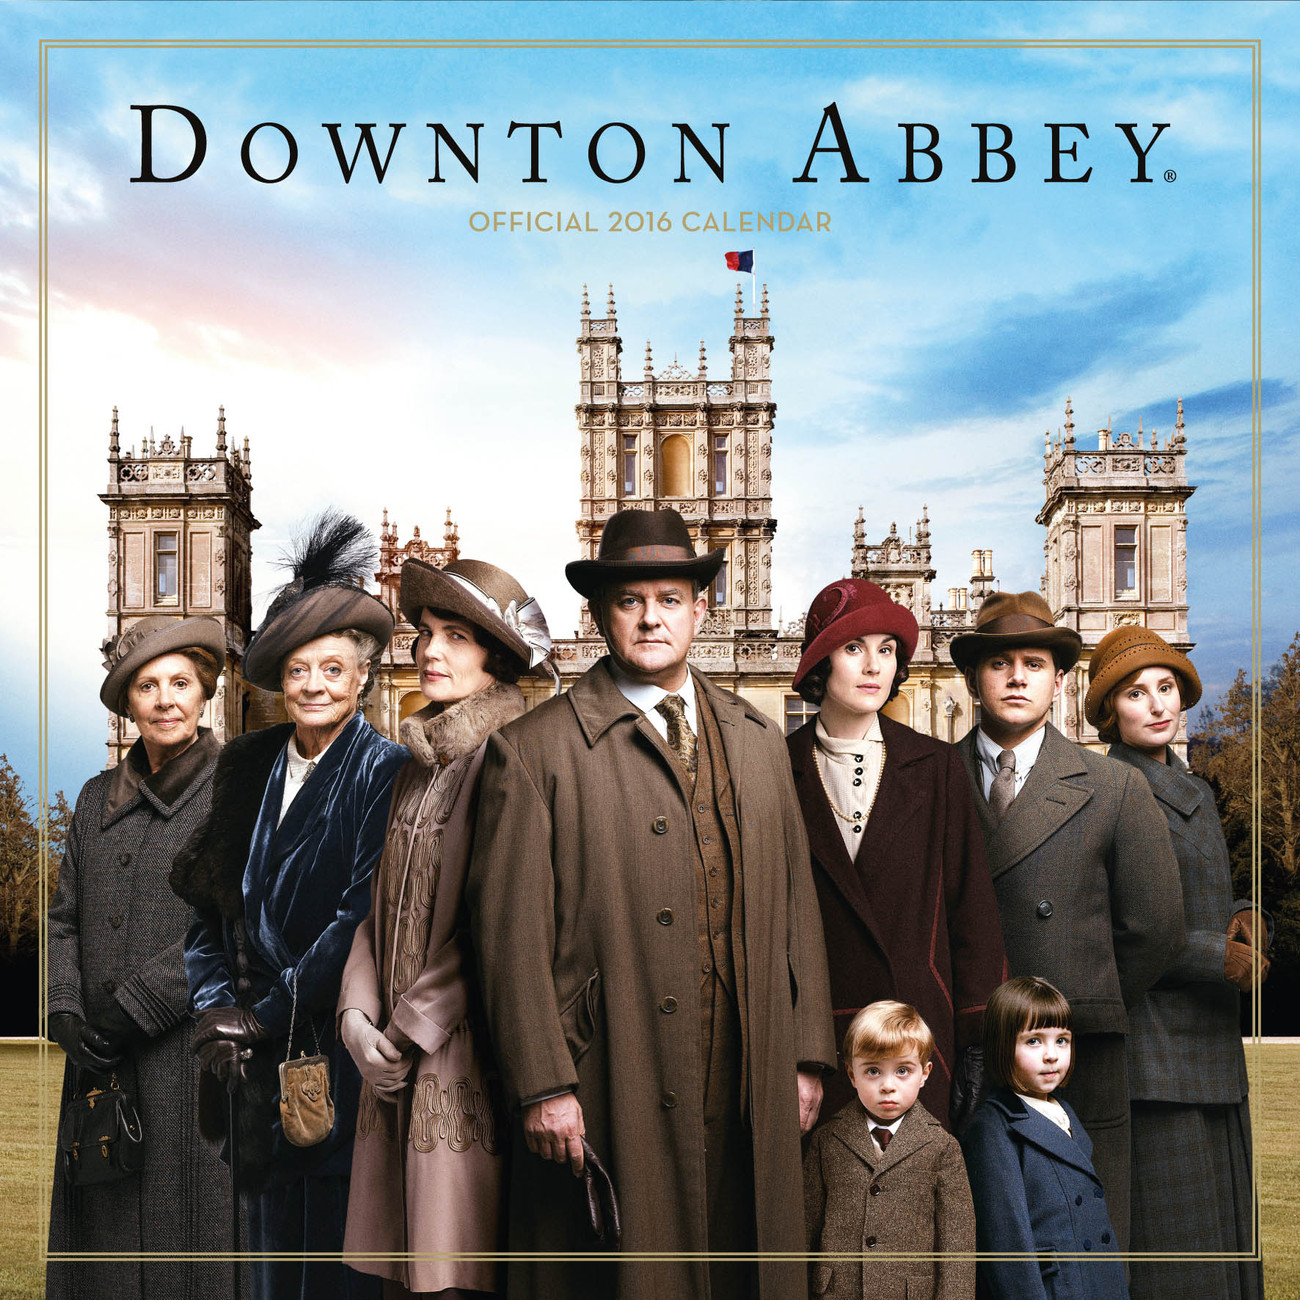 Downton Abbey - Calendars 2018 on Abposters.com